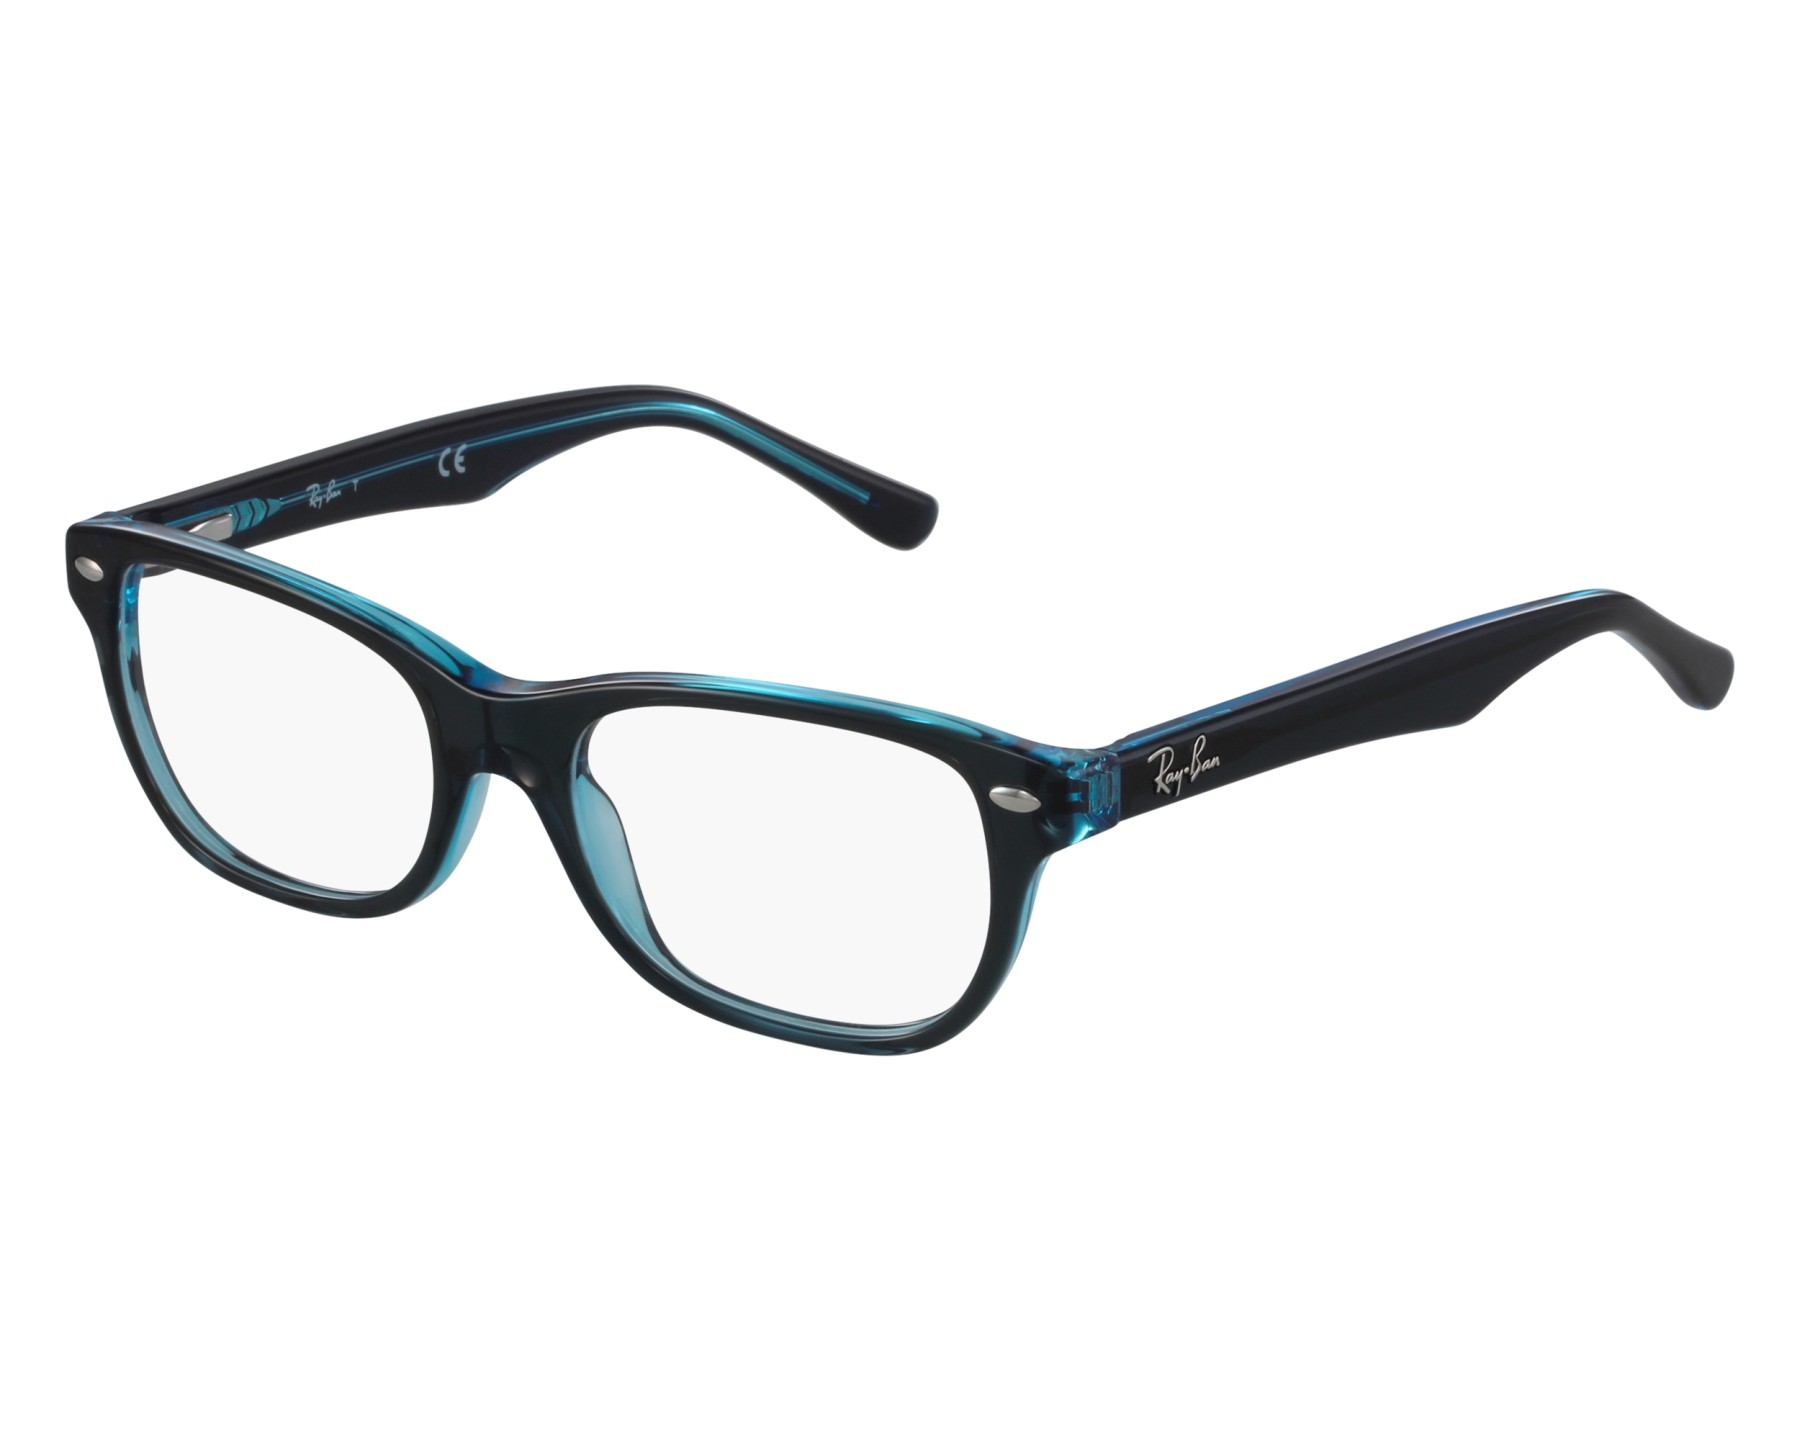 574e6a6d38 eyeglasses Ray-Ban RY-1555 3667 - Mint Blue front view